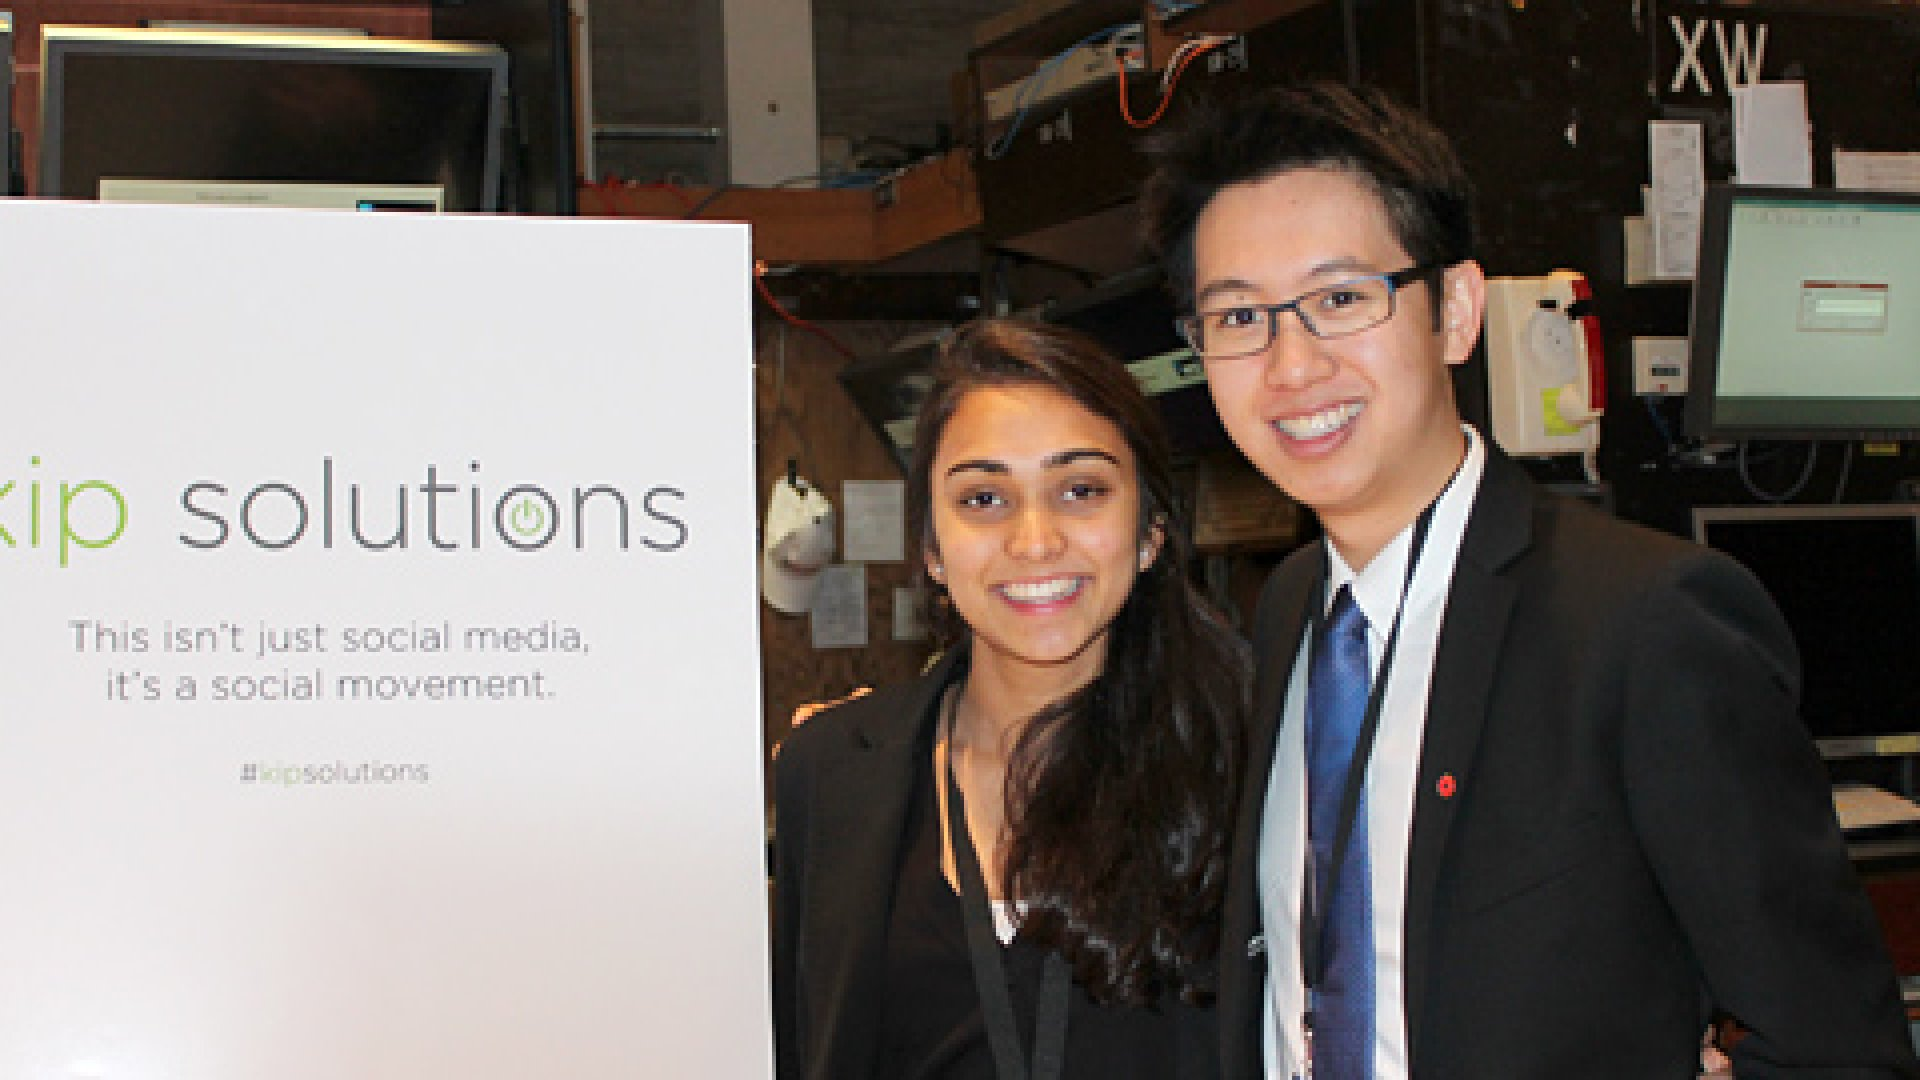 """Co-founders Patrick Ip (pictured), Kavya Shankar and Sonia Chokshi (pictured) sought to answer the question, """"How can we use social media to really make a difference?"""""""